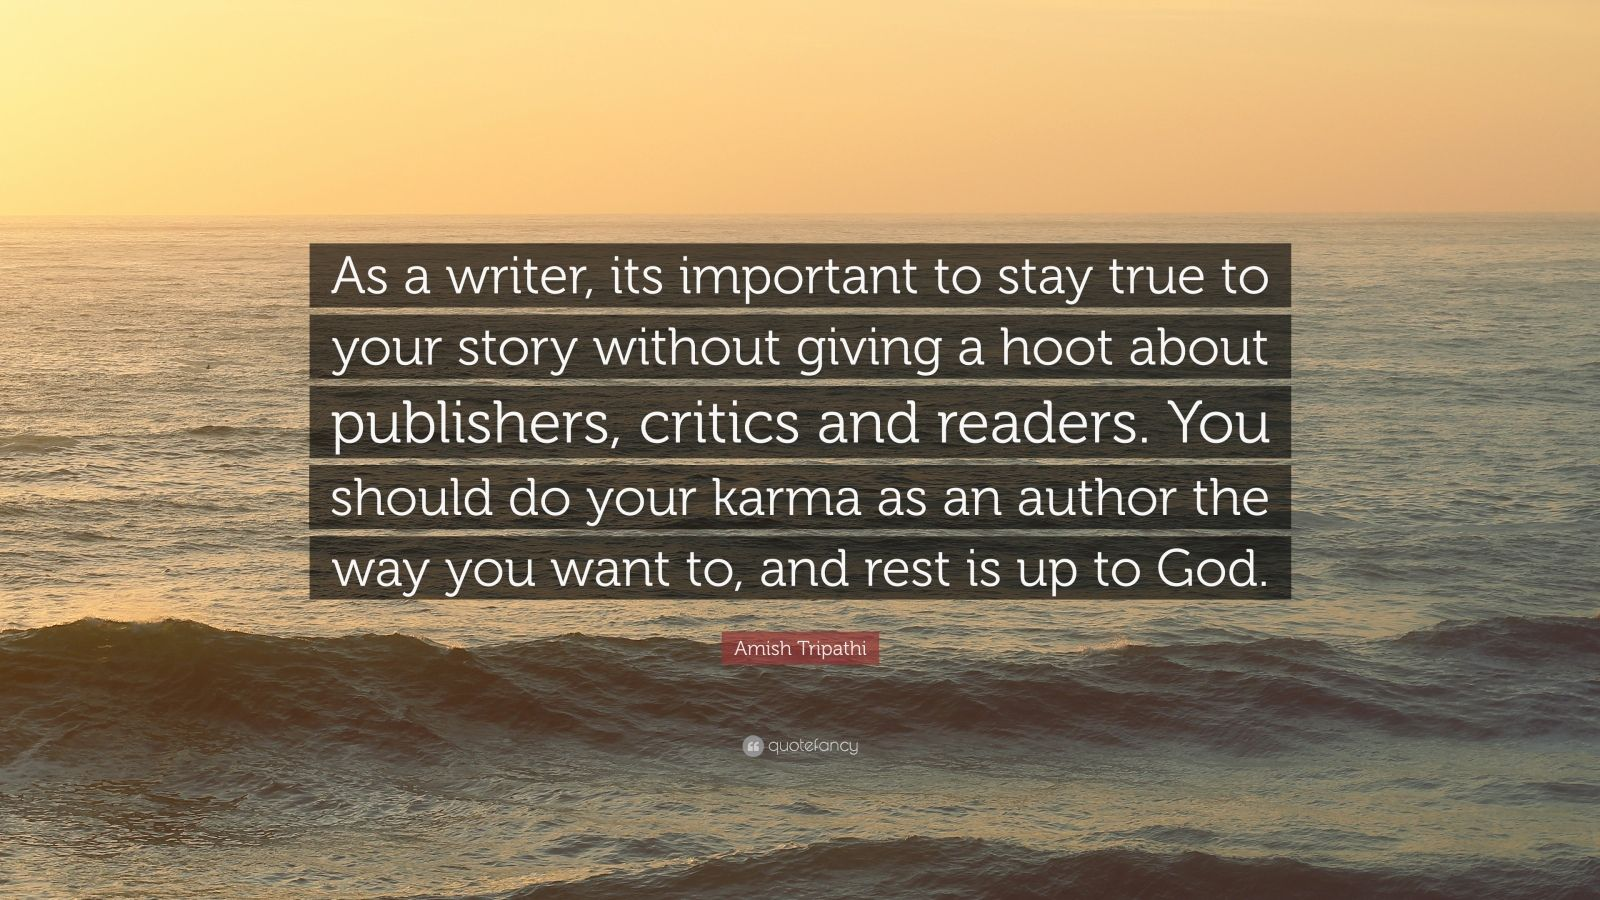 """Amish Tripathi Quote: """"As a writer, its important to stay true to your story without giving a hoot about publishers, critics and readers. You should do your karma as an author the way you want to, and rest is up to God."""""""